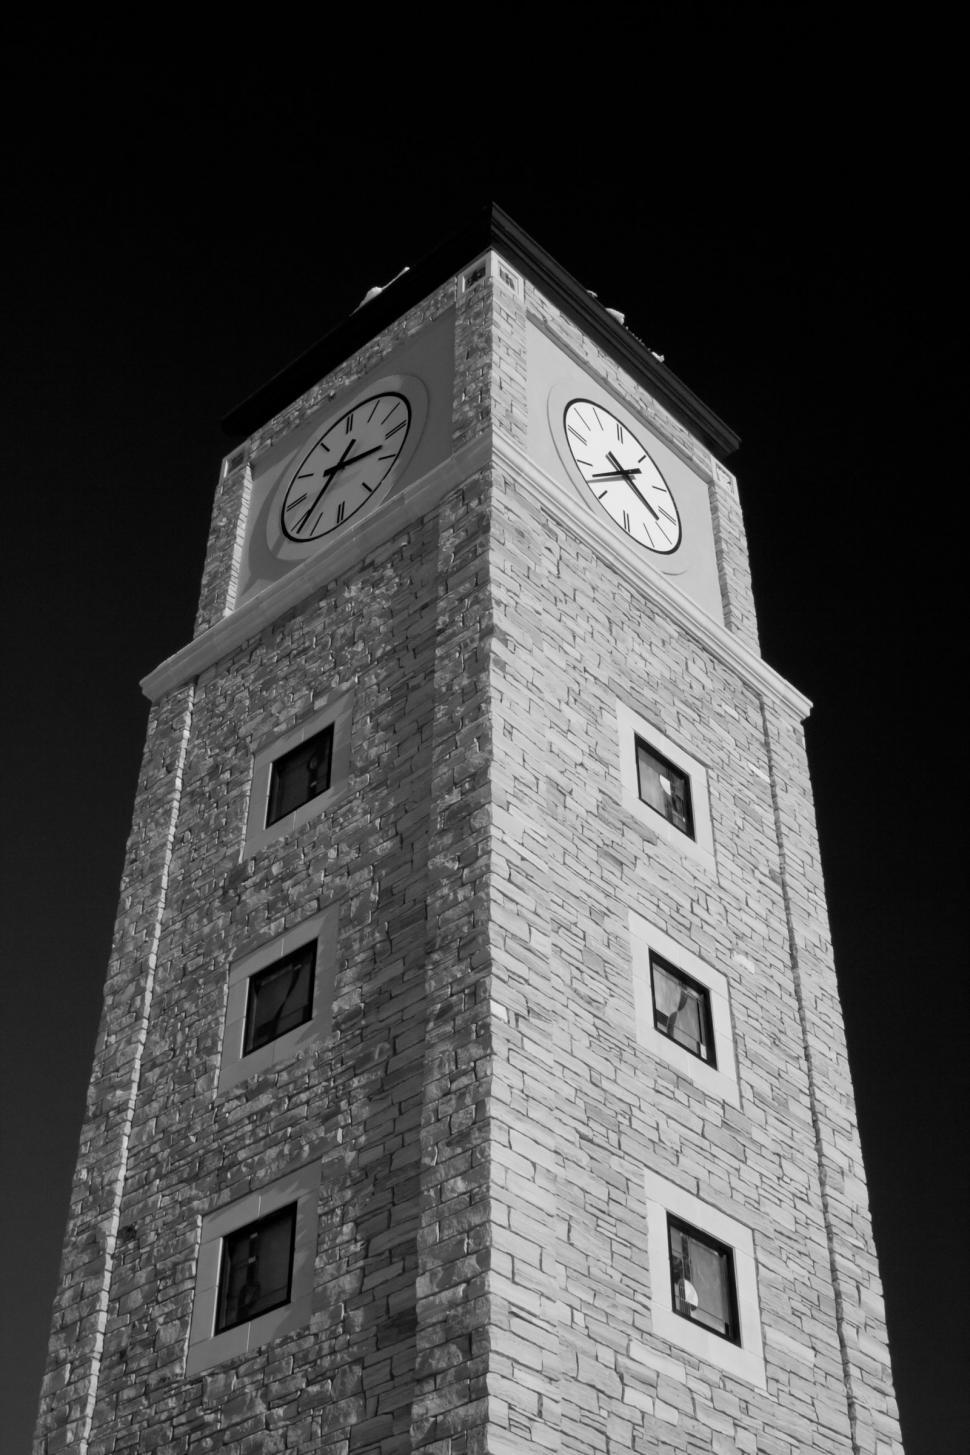 Download Free Stock Photo of Clock Tower